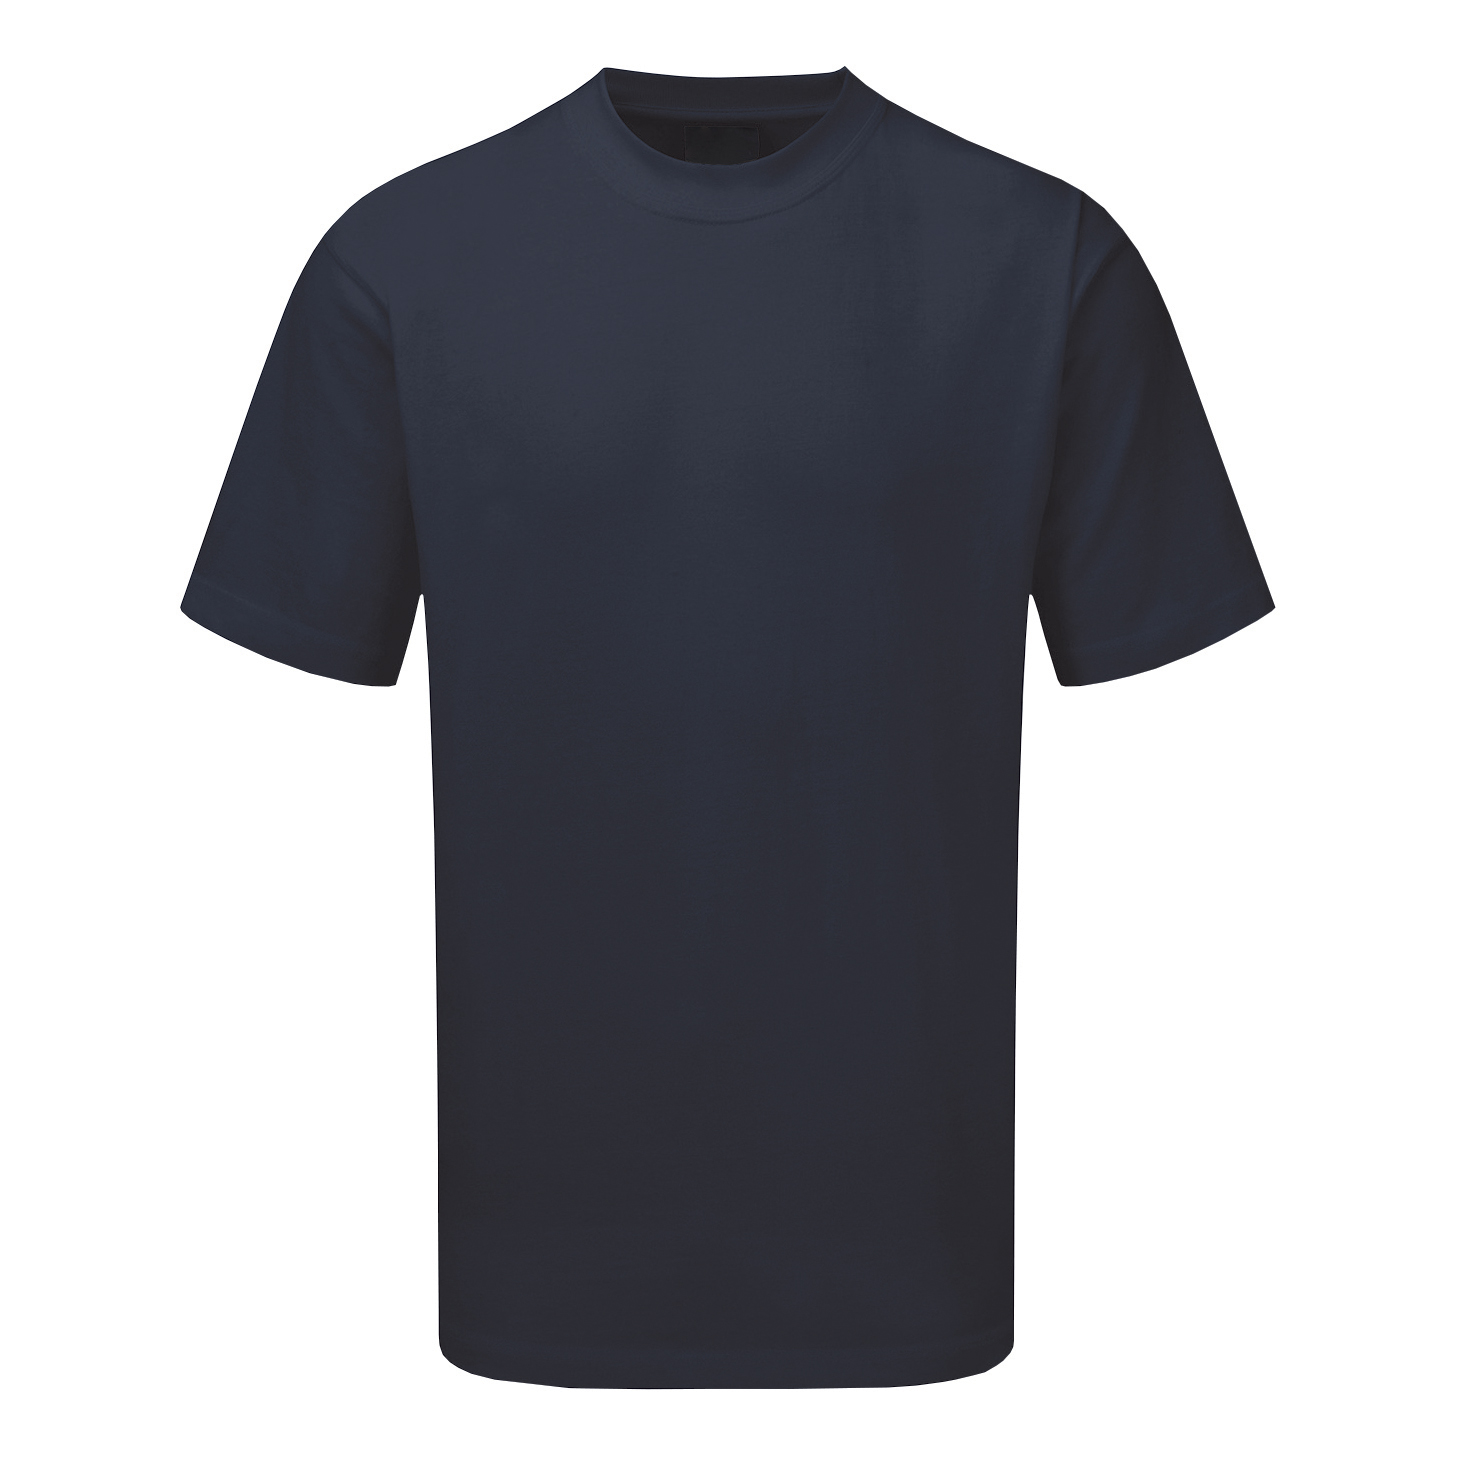 Premium T-Shirt Polycotton Triple Stitched 3XL Navy Blue Ref CLCTSHWNXXXL *Up to 3 Day Leadtime*